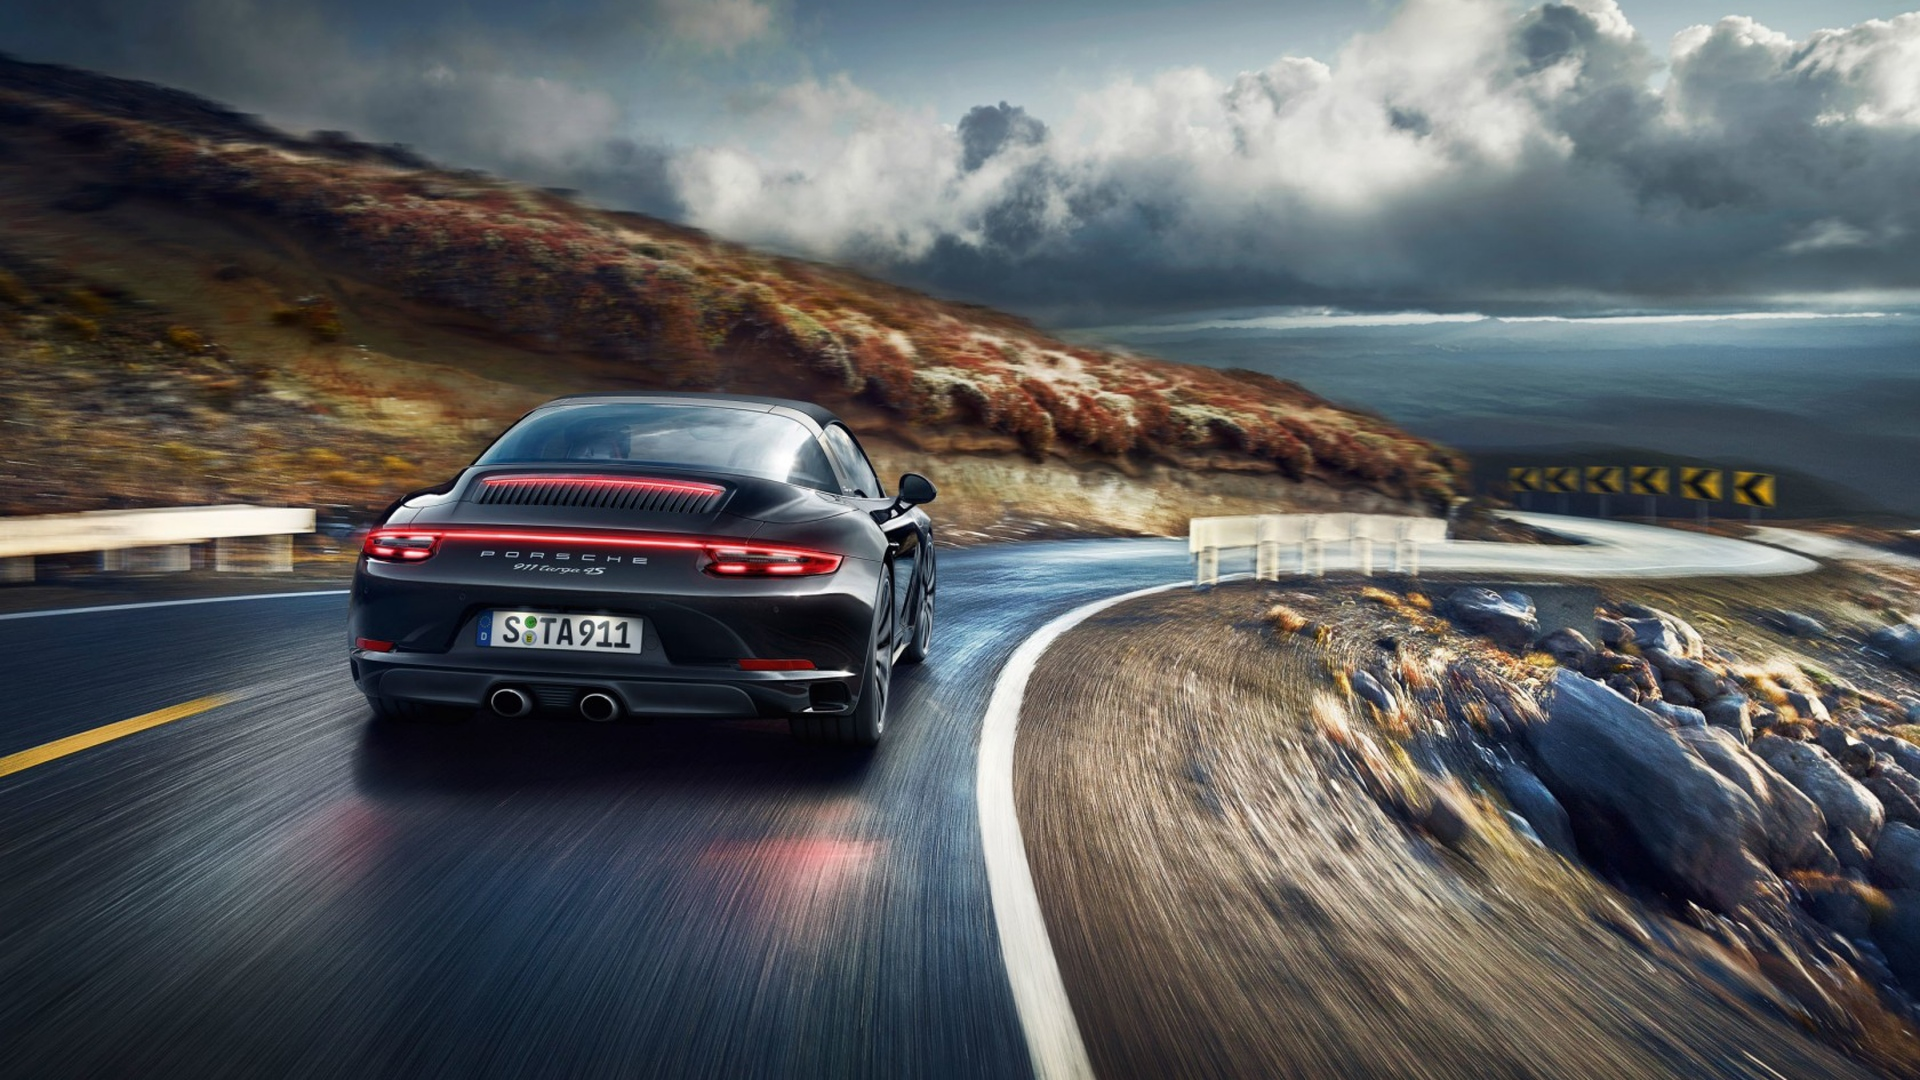 Porsche Hd Wallpapers 1080p: 1920x1080 Porsche 911 Laptop Full HD 1080P HD 4k